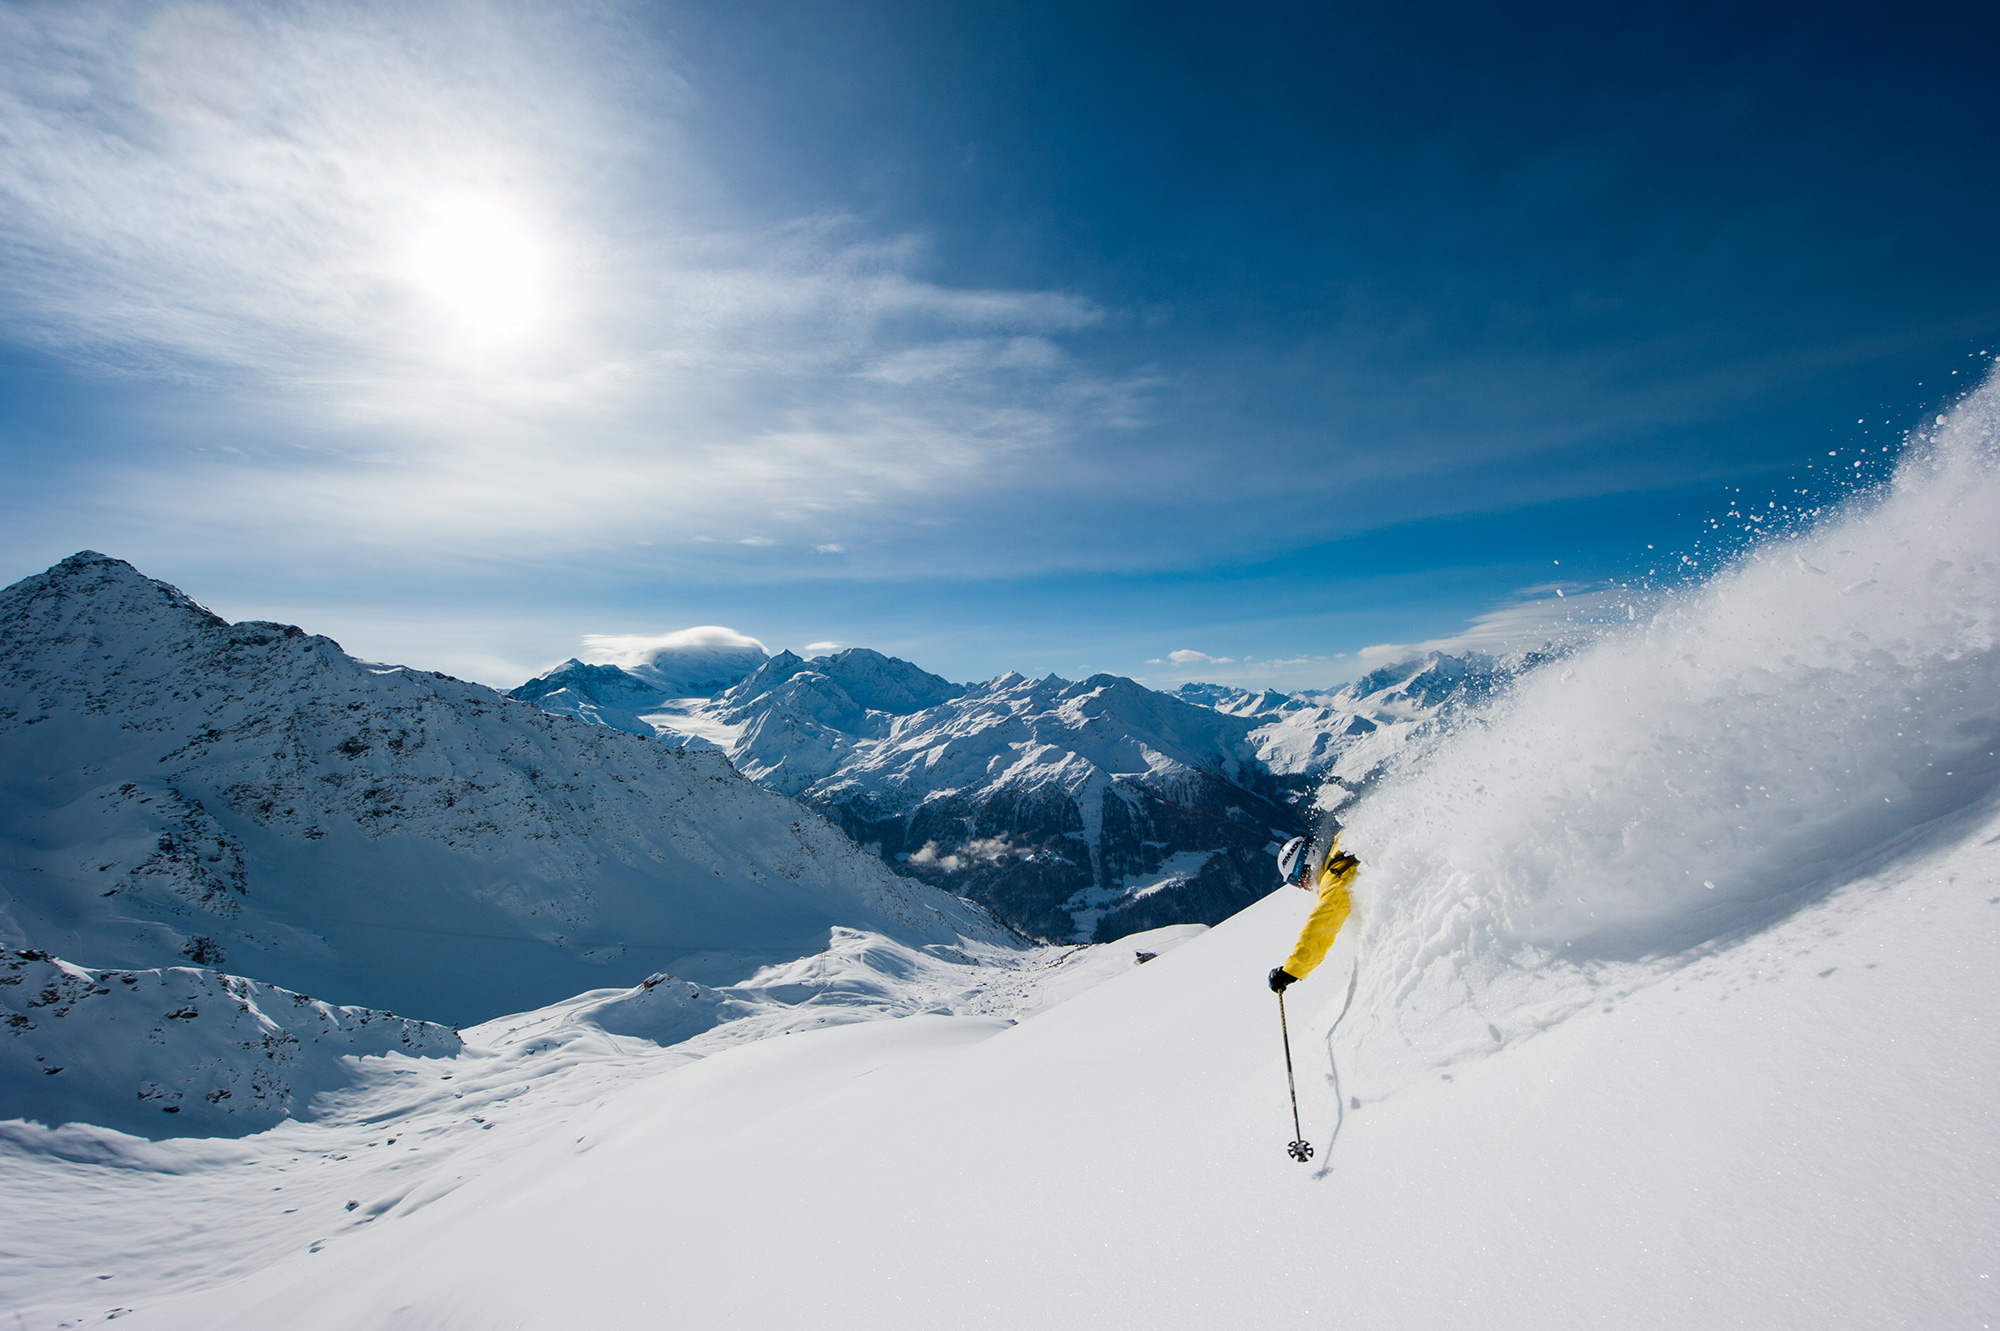 Skiing in Verbier